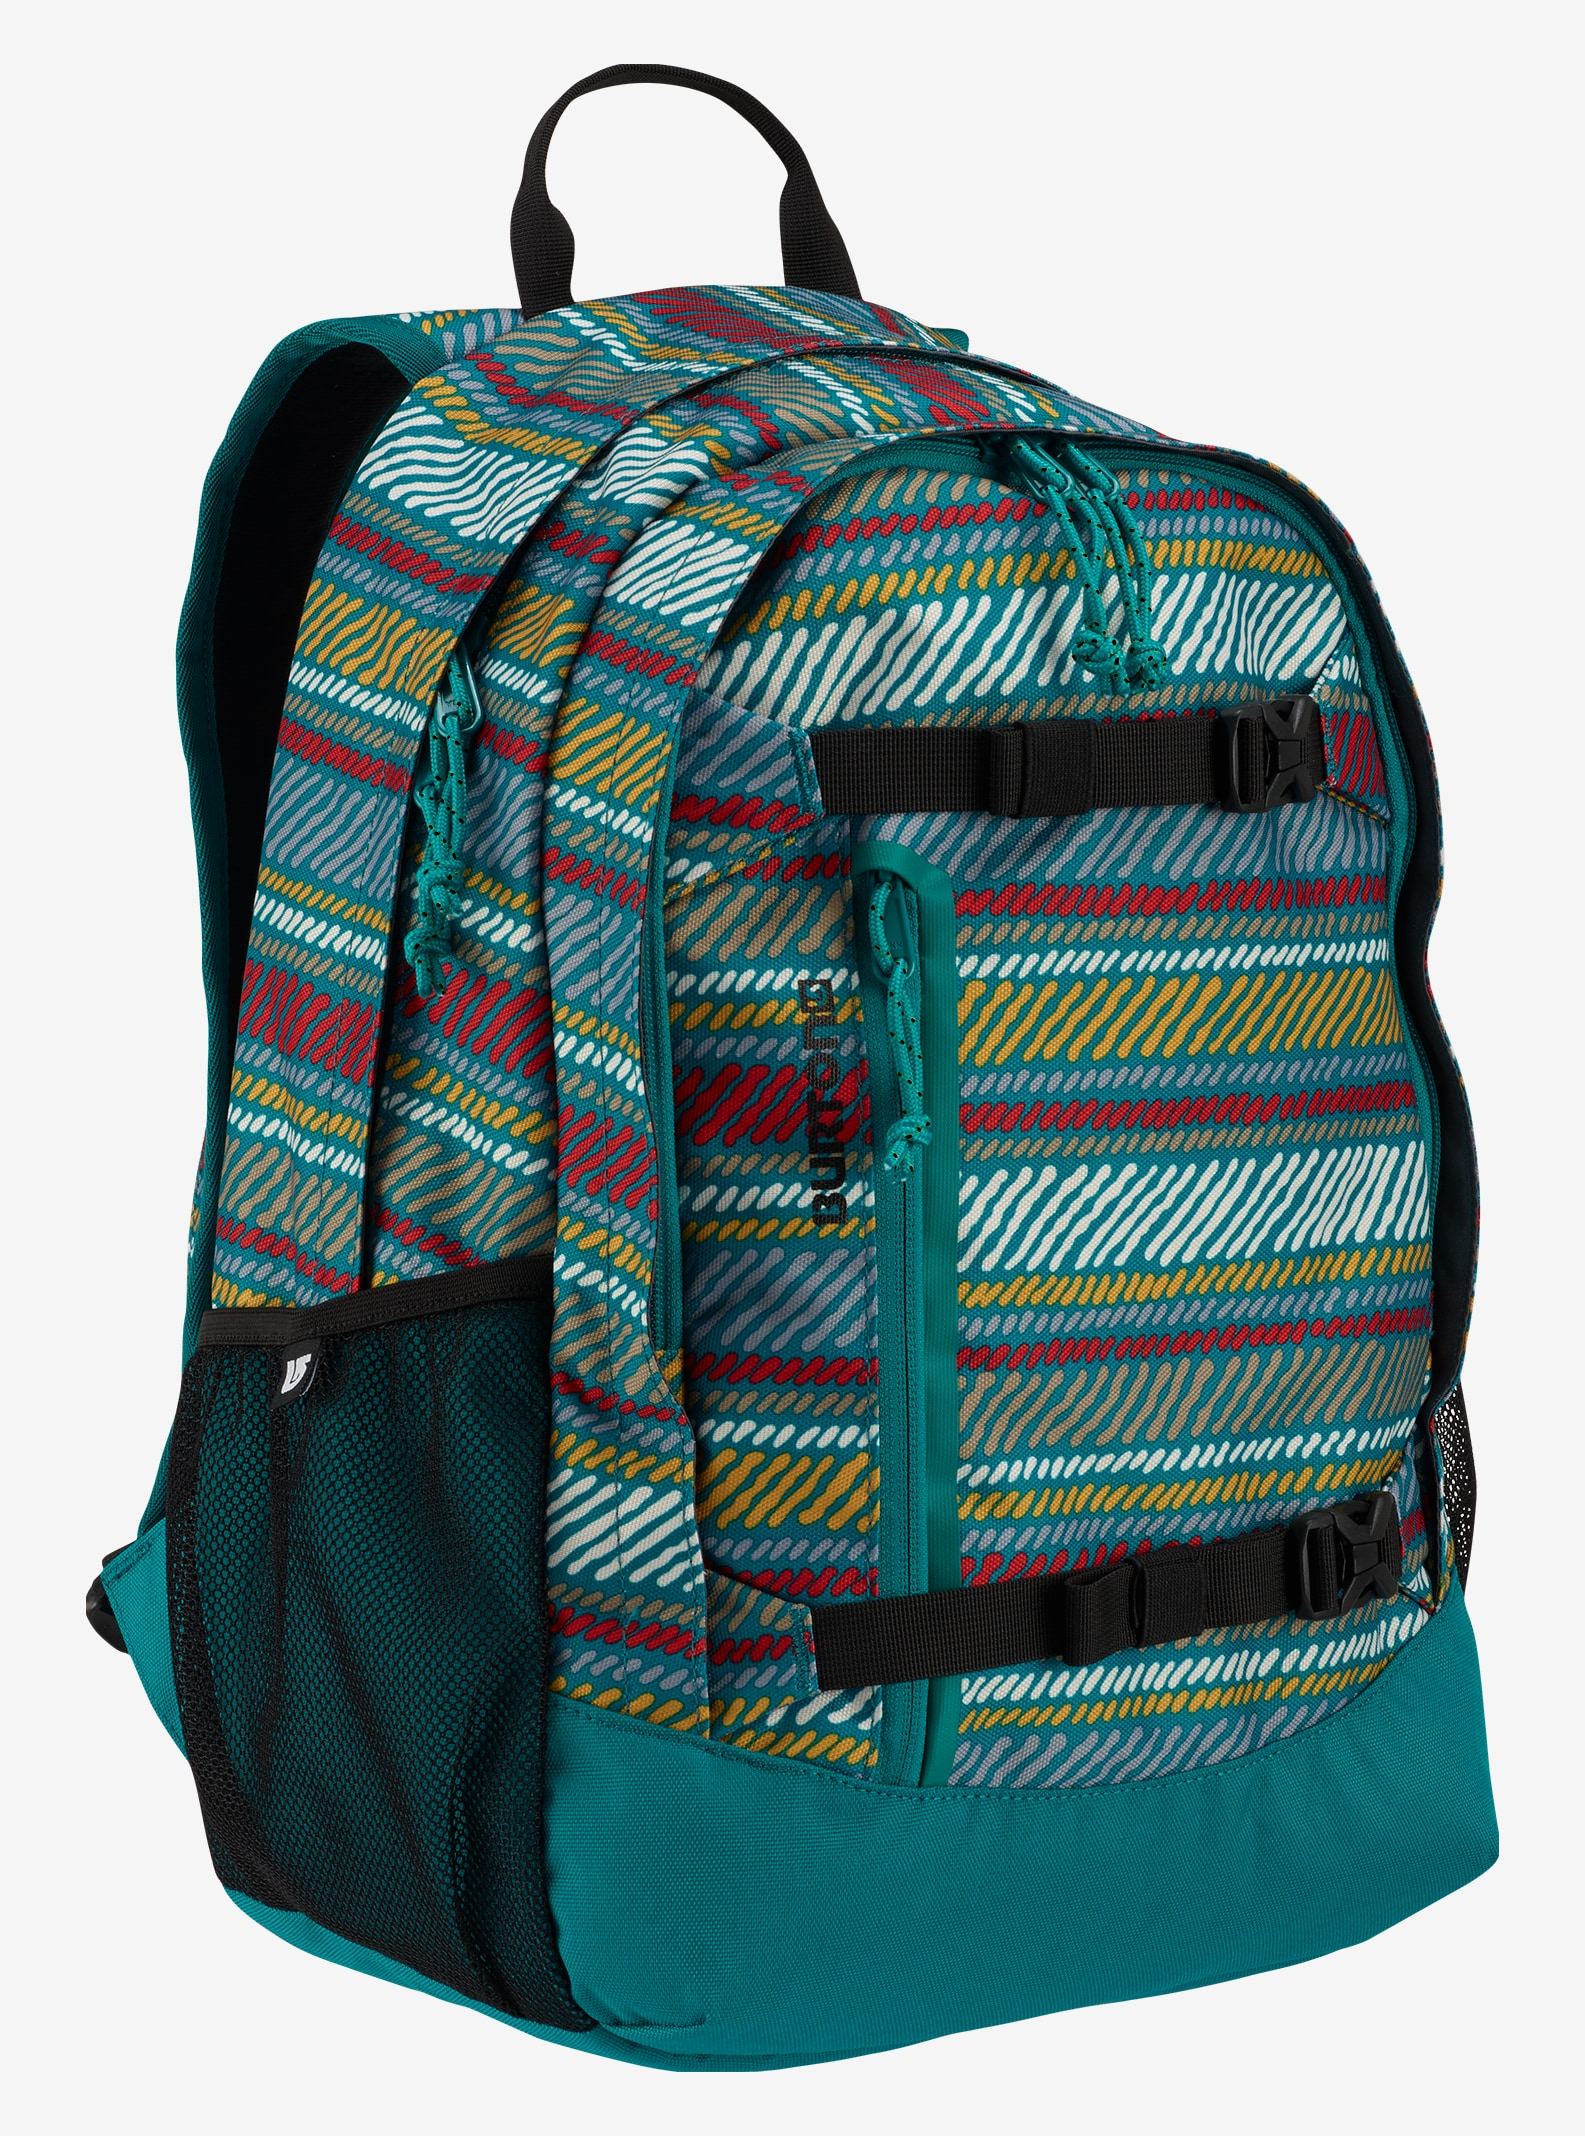 Burton Kids' Day Hiker 20L Backpack shown in Paint Stripe Print